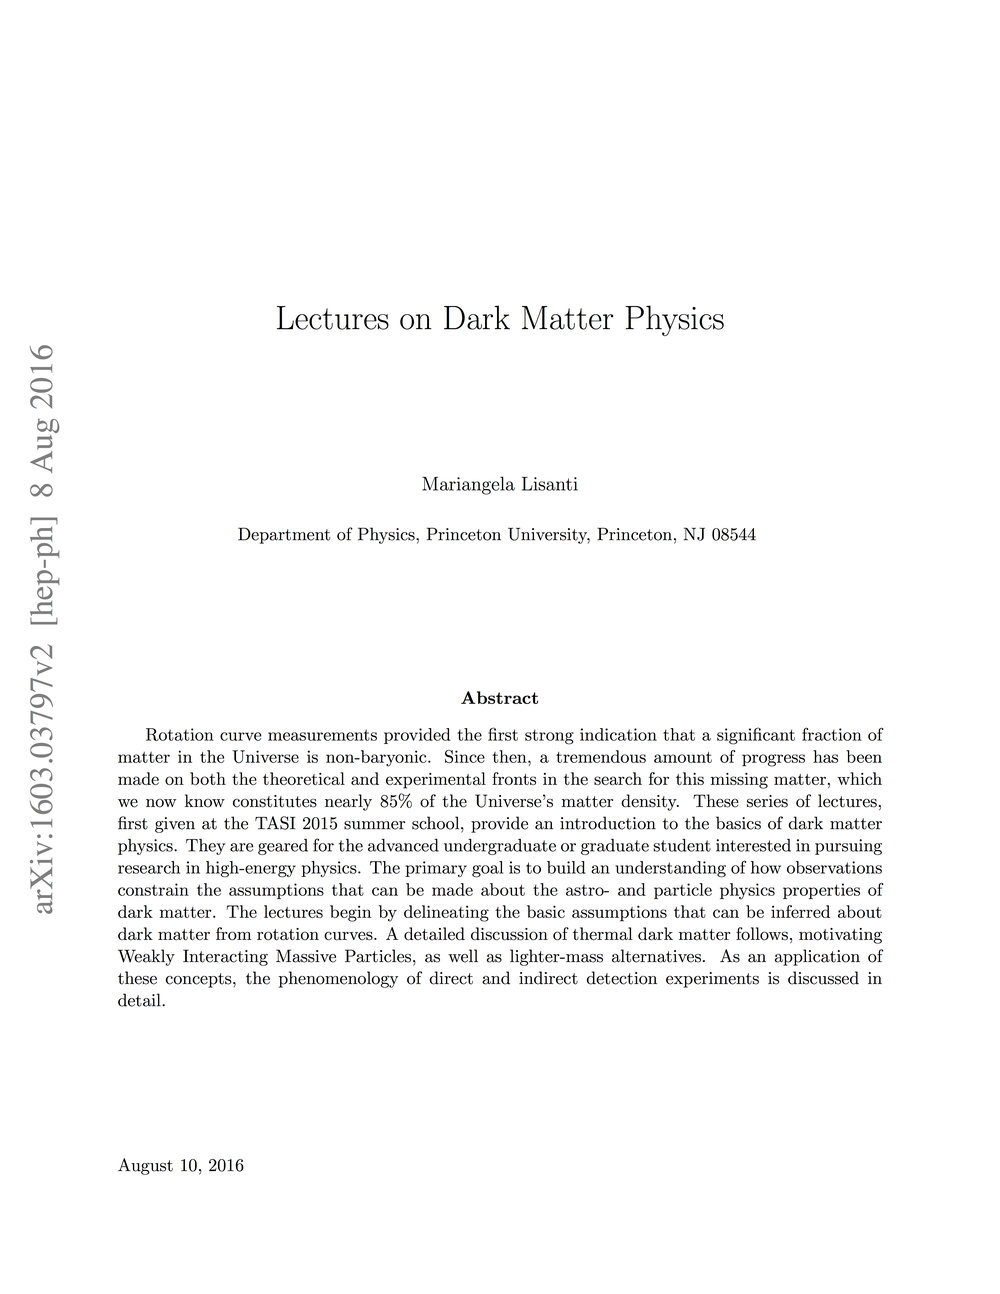 TASI Lectures on Dark Matter Physics